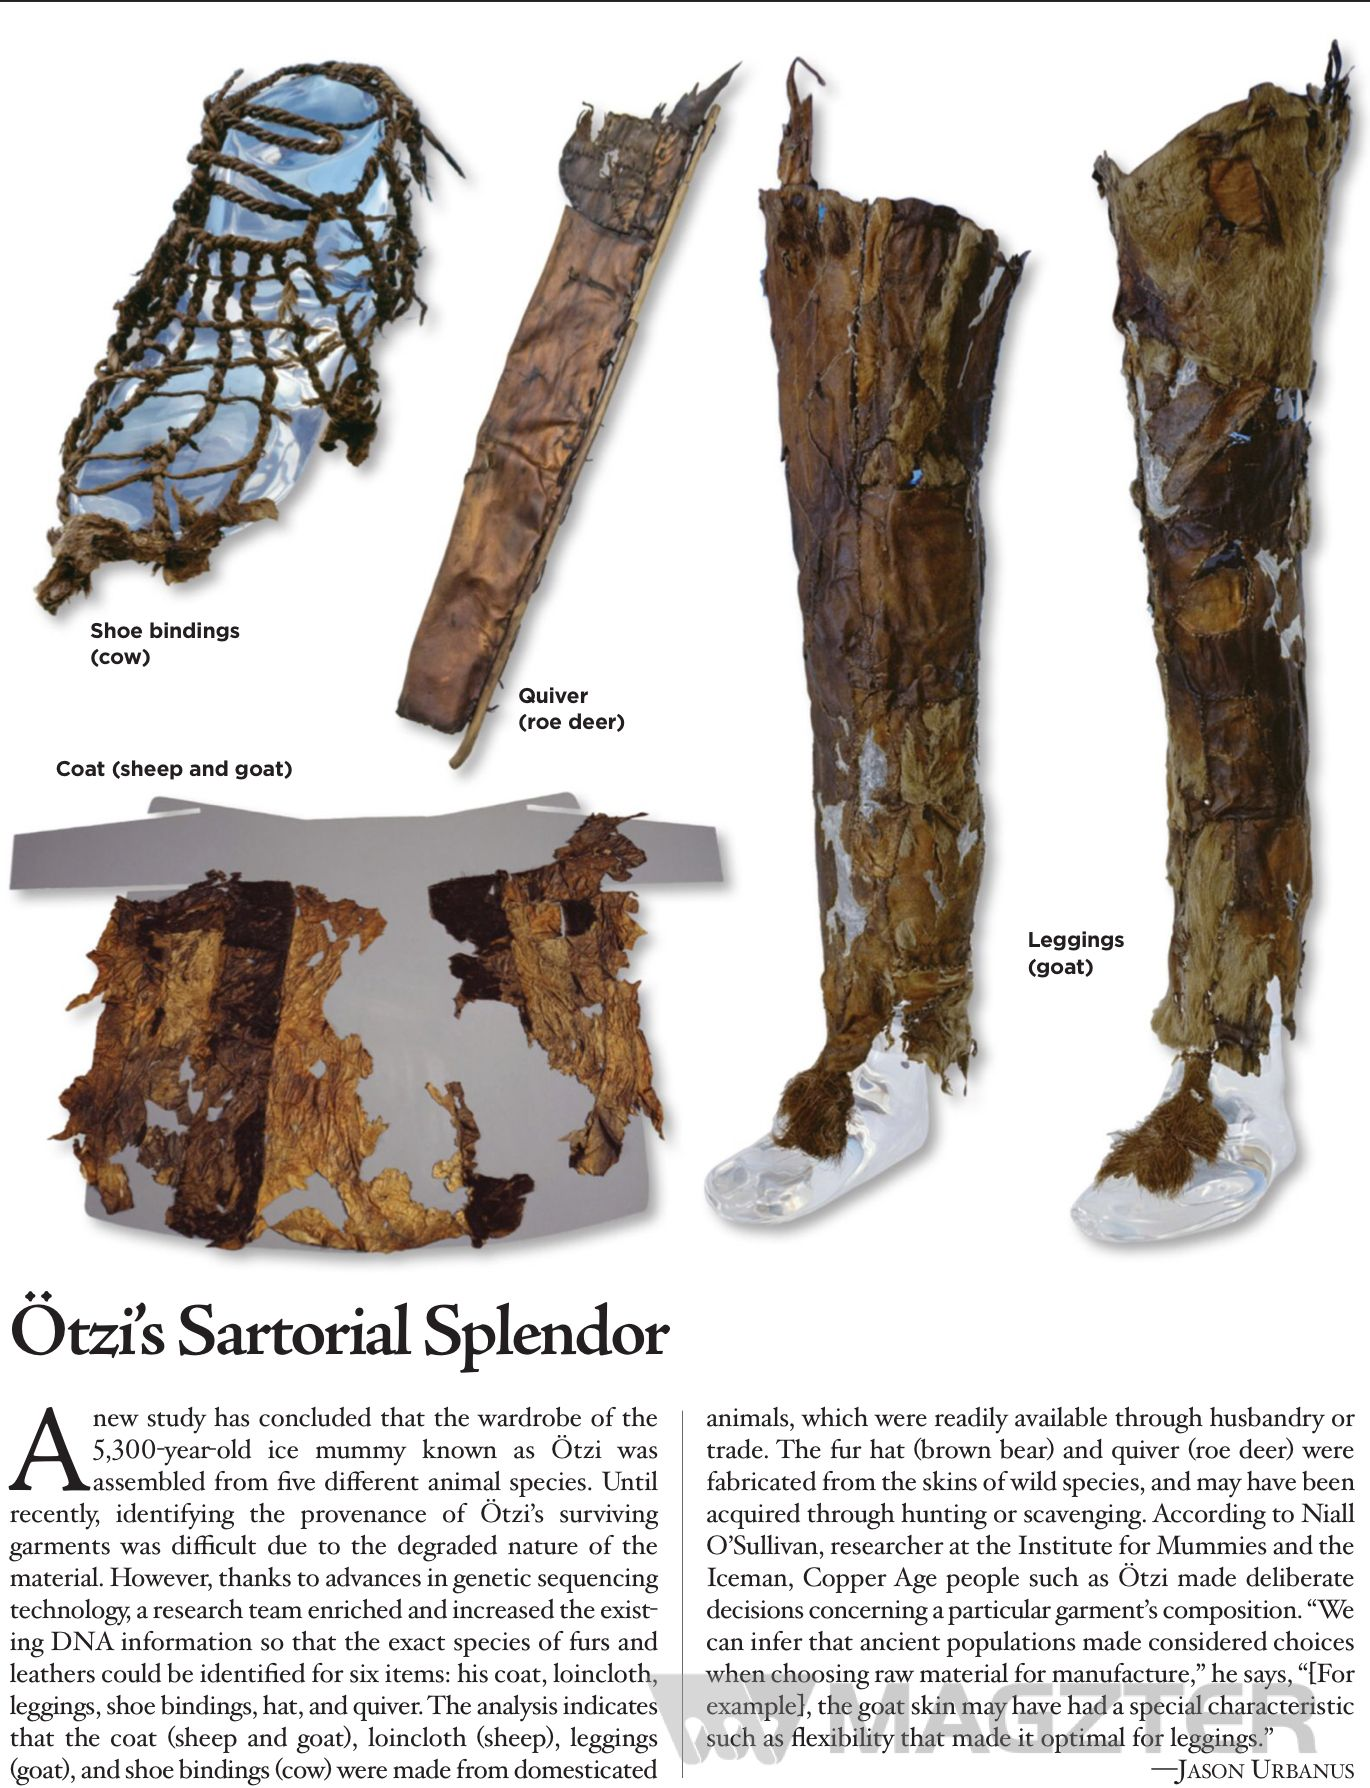 Read Archaeology On Magzter